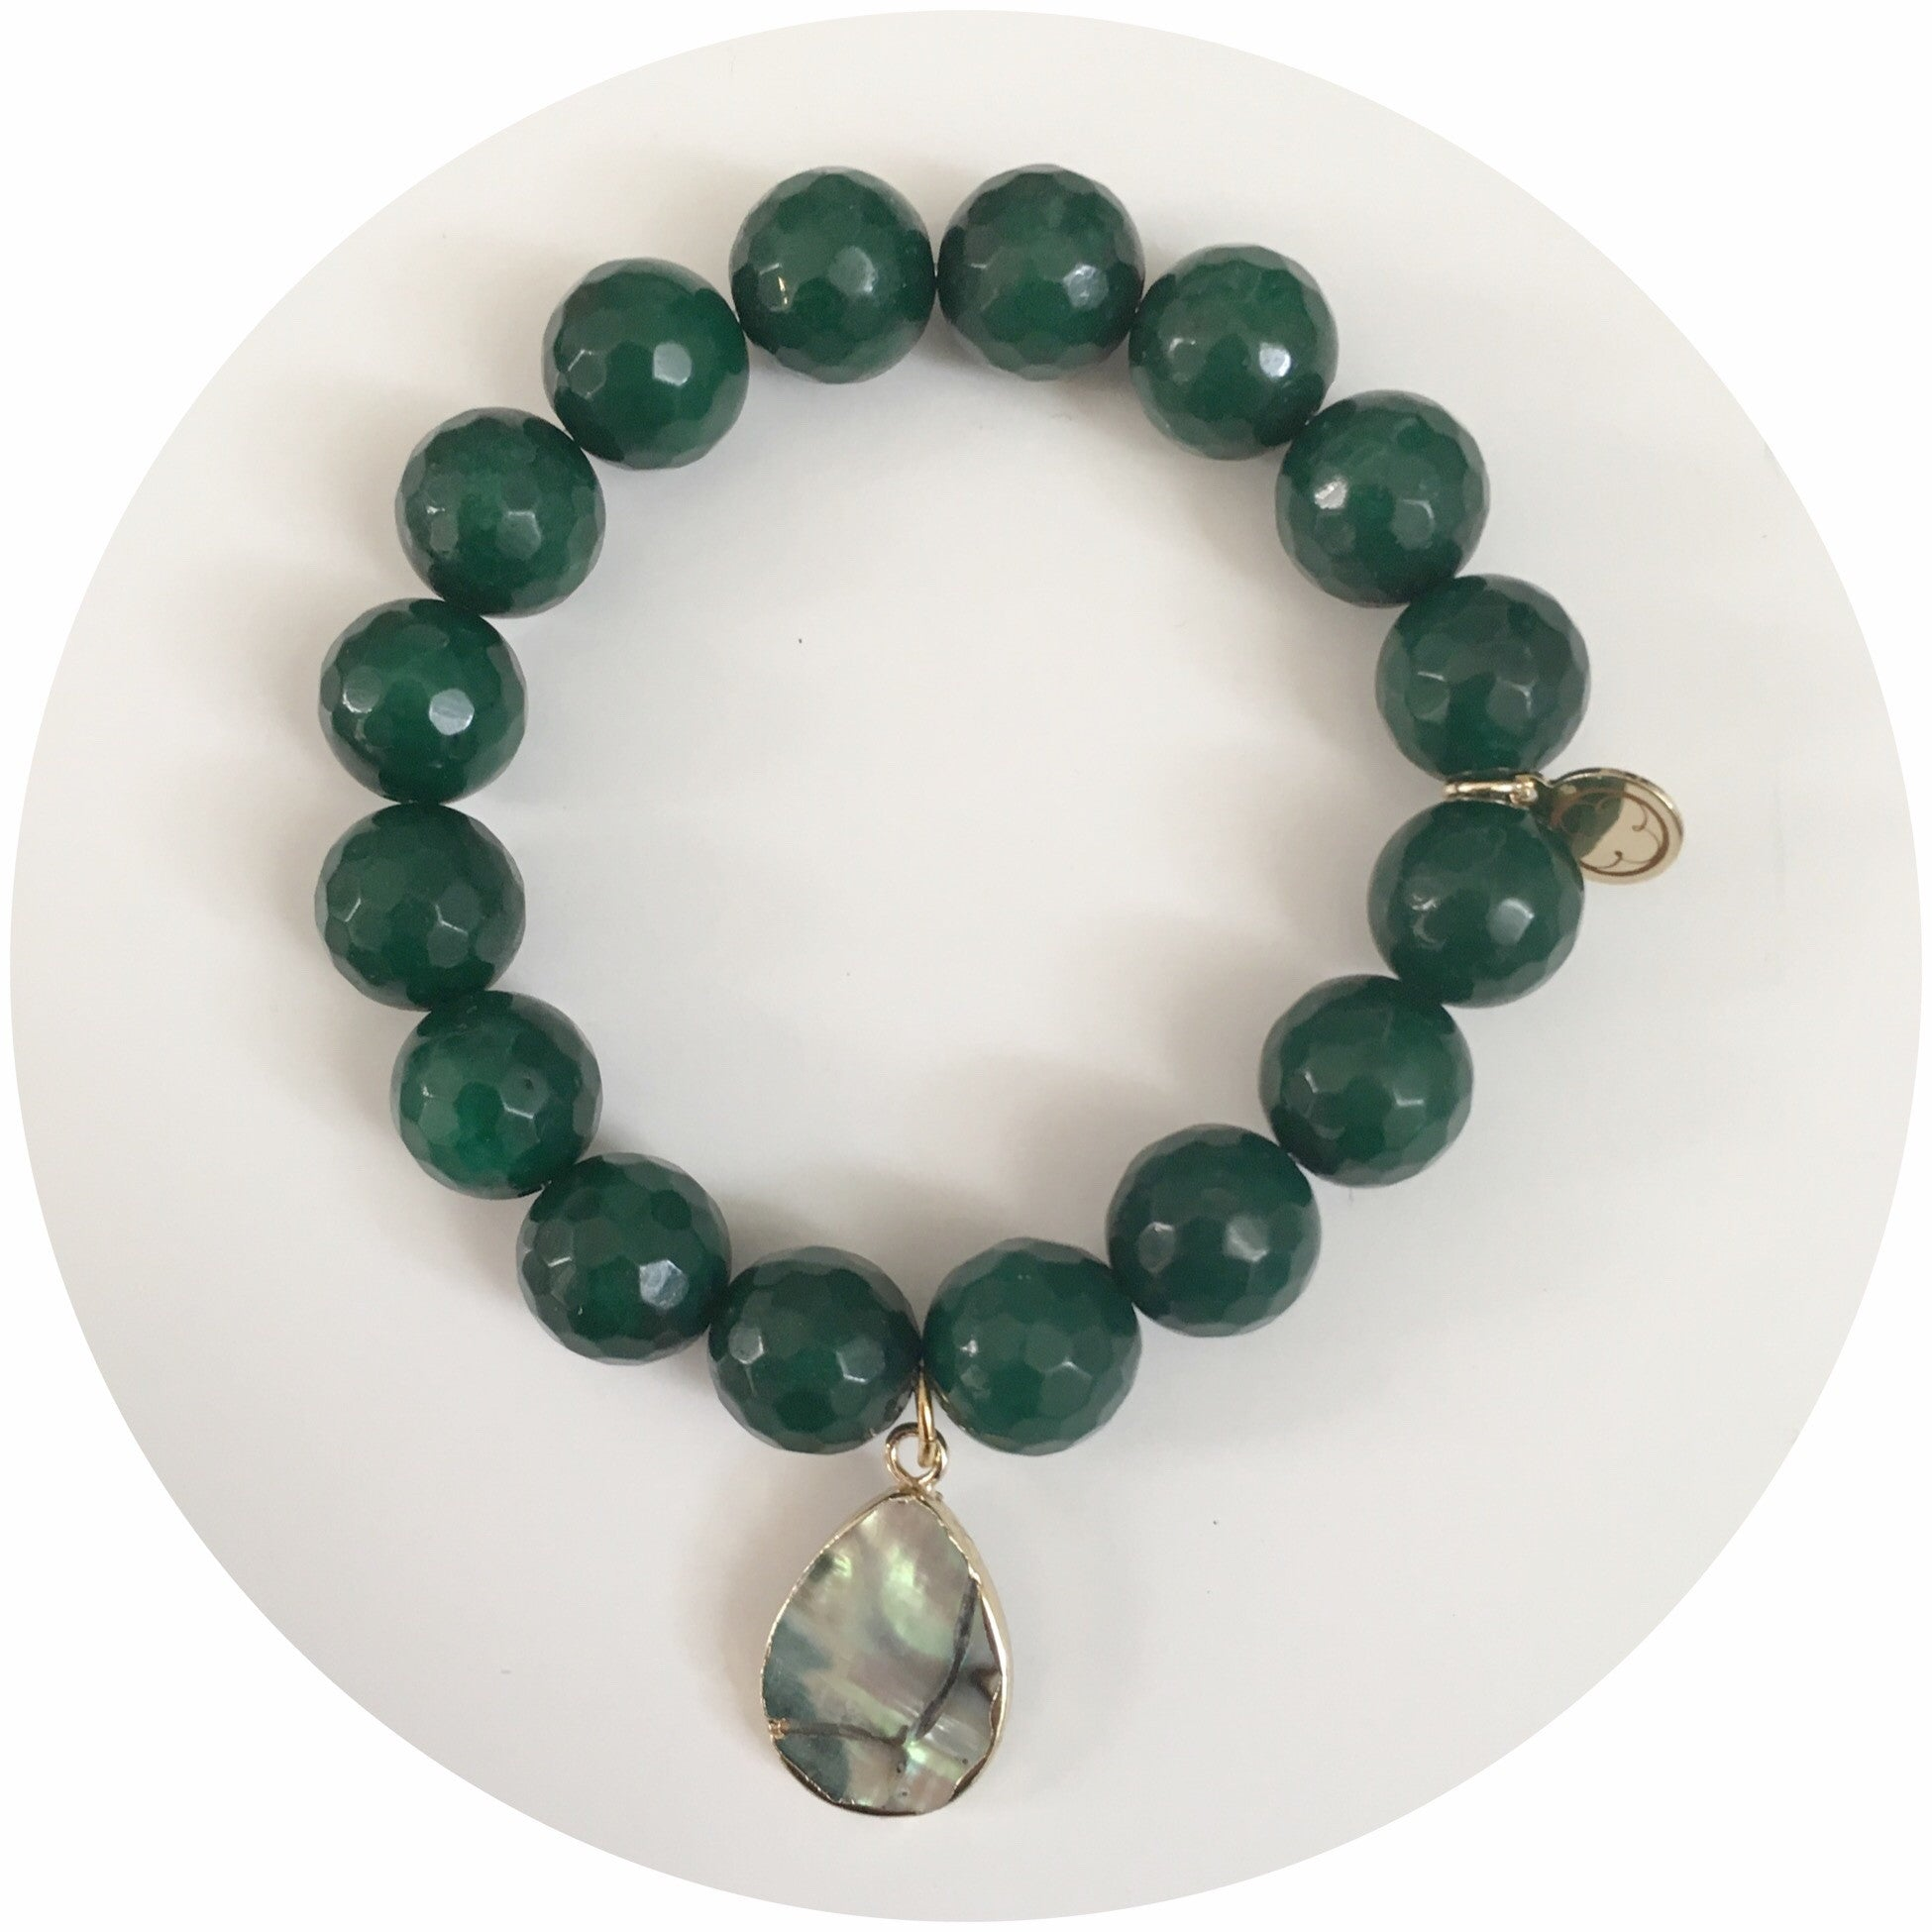 Emerald Green Jade with Abalone Teardrop Pendant - Oriana Lamarca LLC